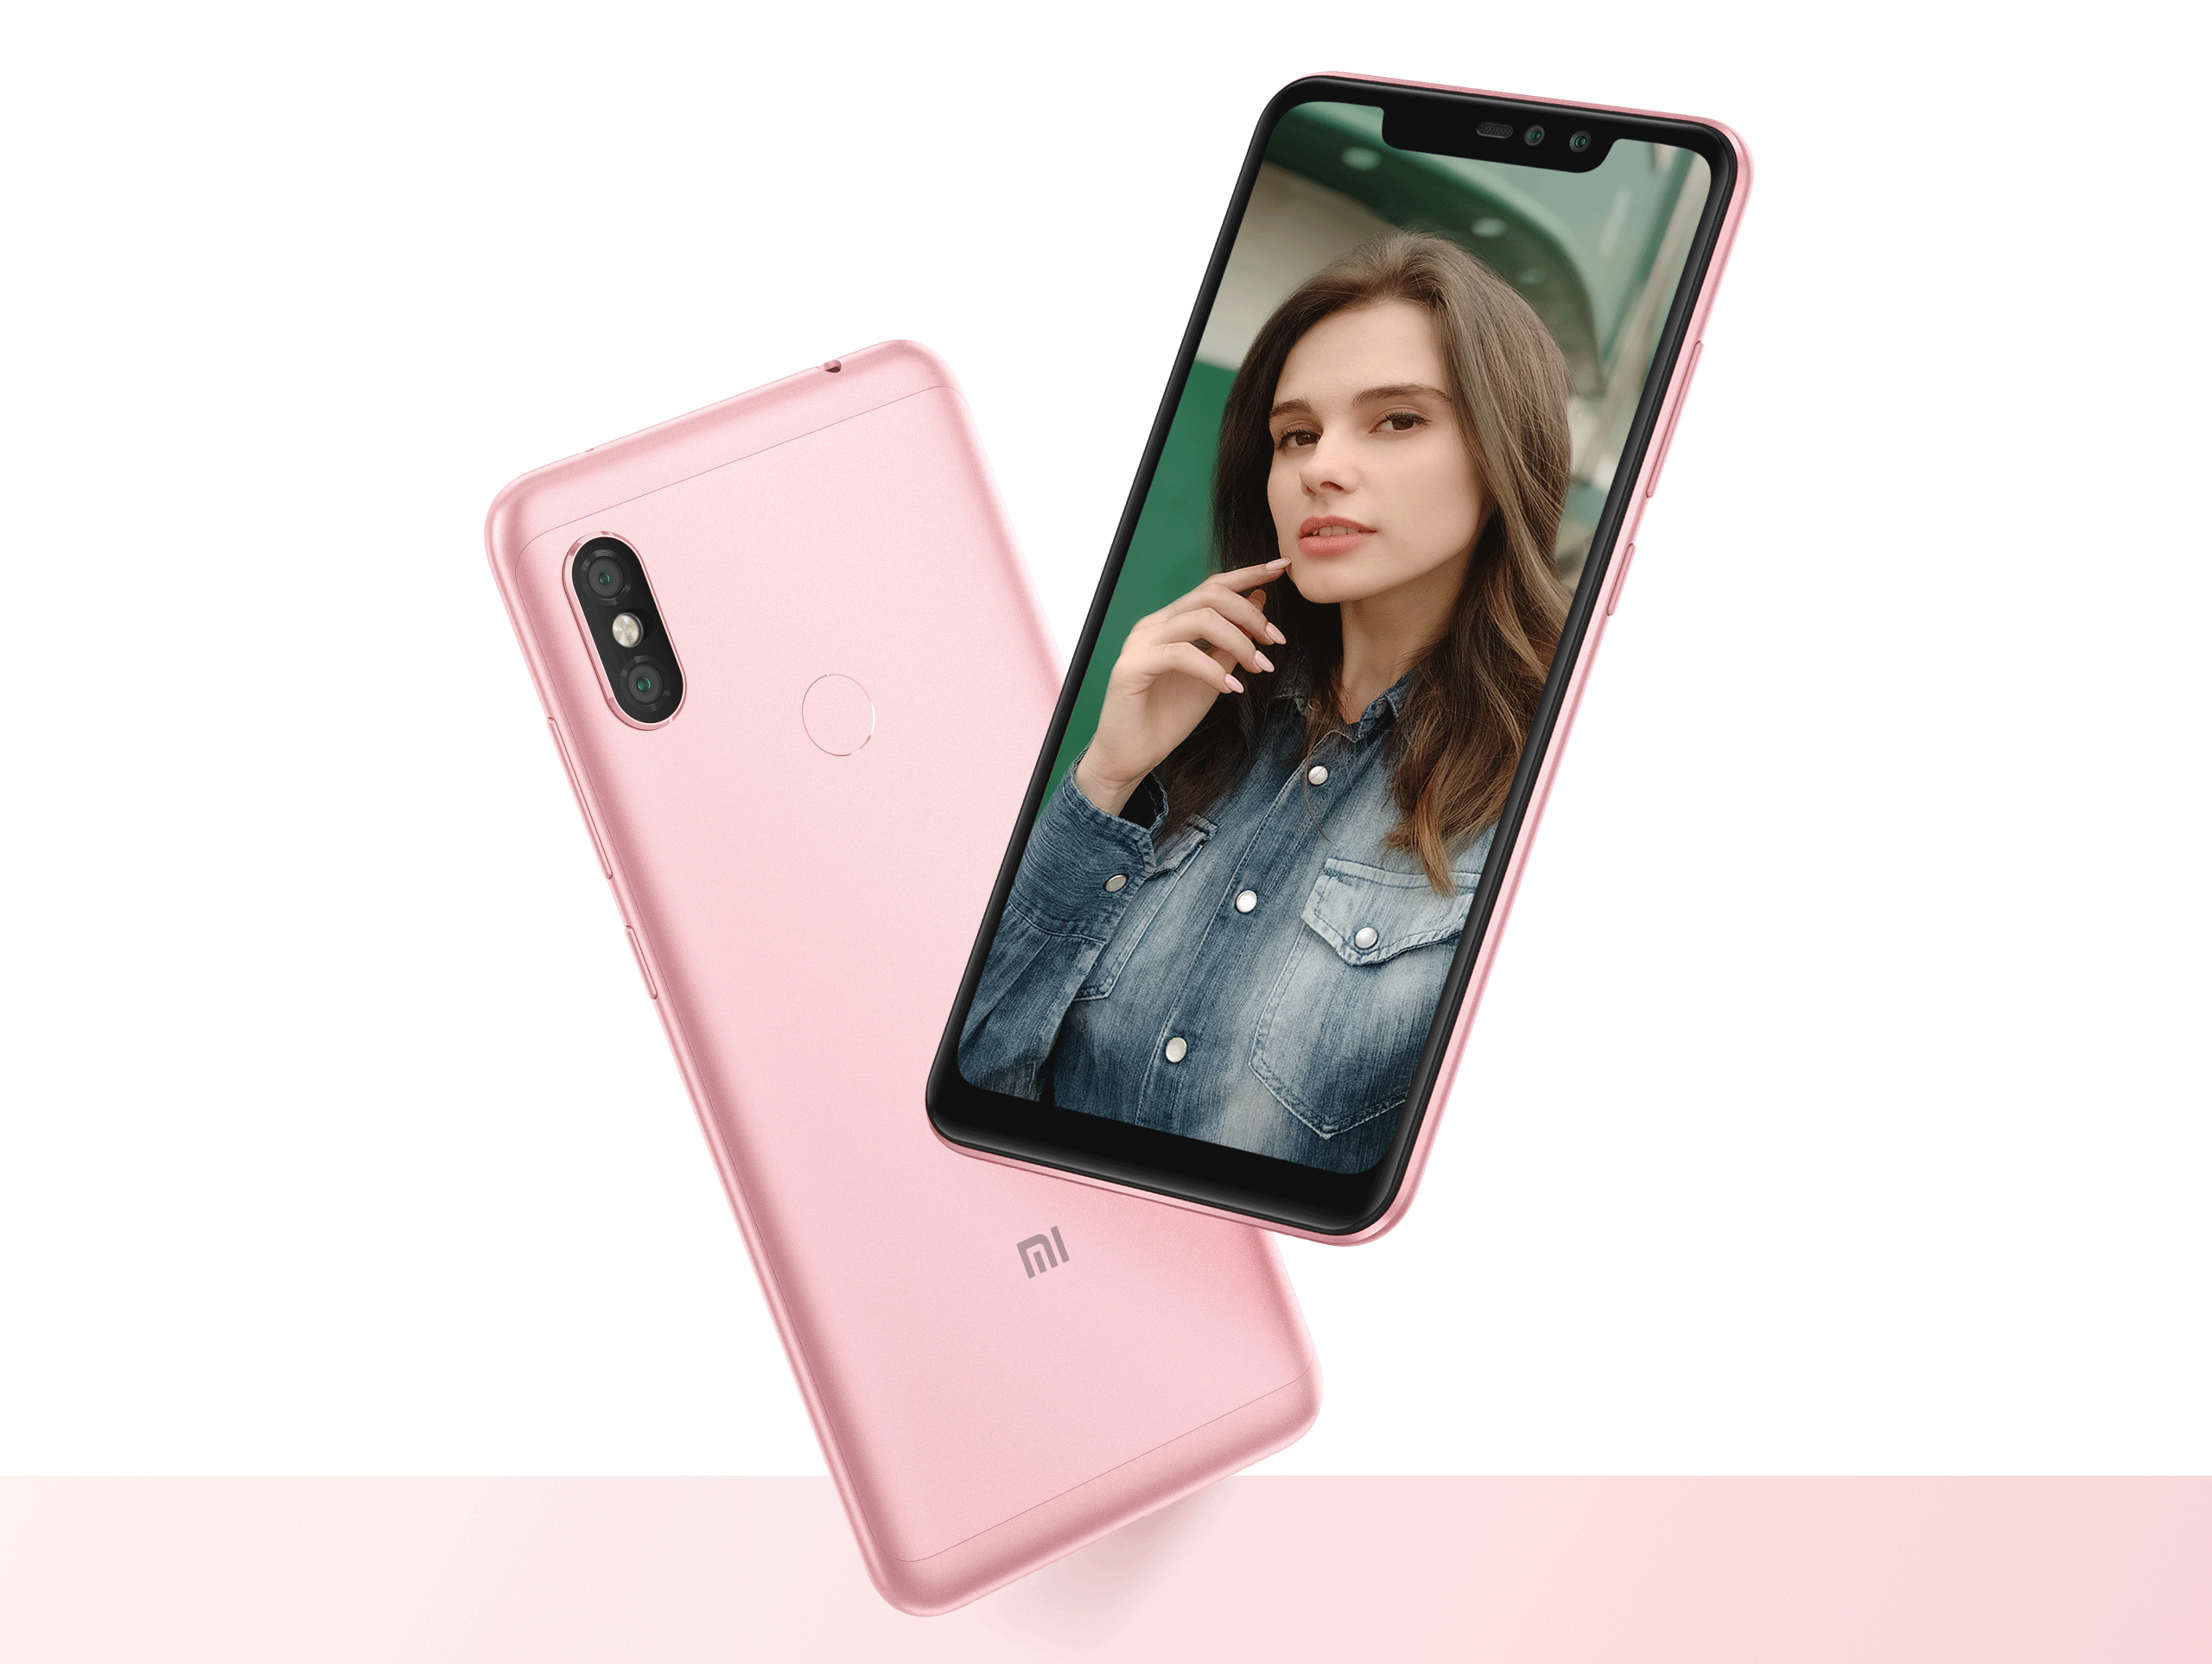 https://i01.appmifile.com/webfile/globalimg/redmi-note-6-pro/e7t_long_pic031.png